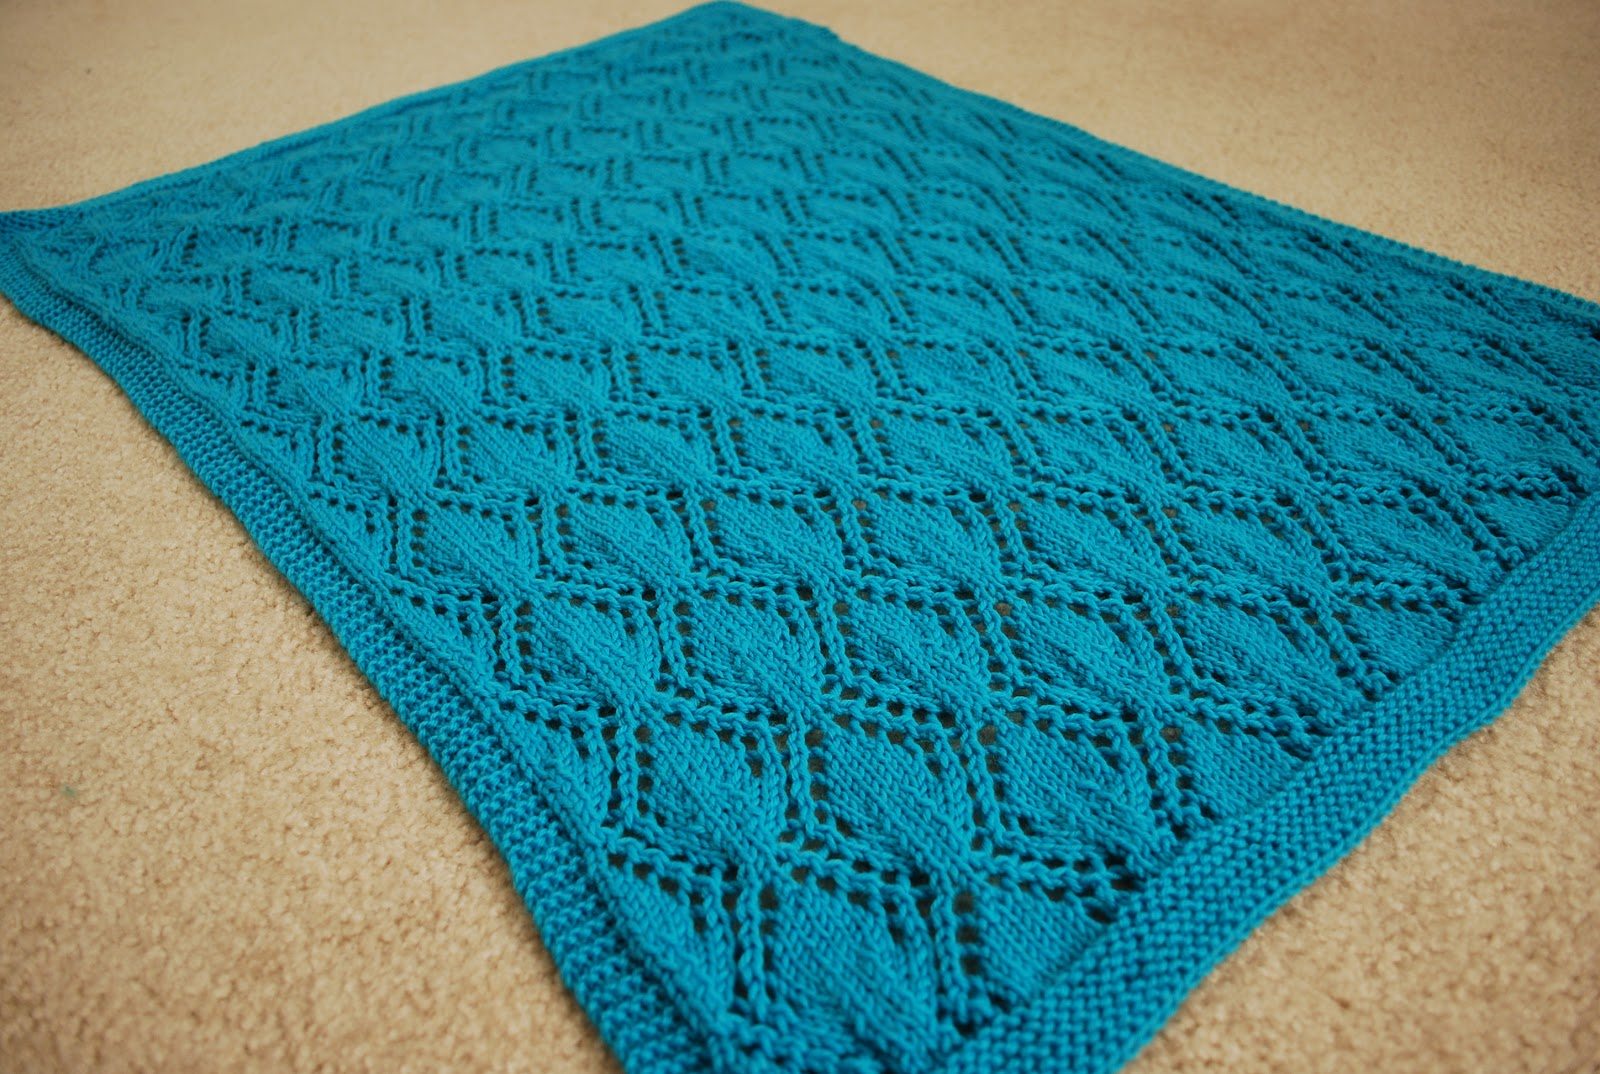 Knitting Pattern Leaf Baby Blanket : Knit/Wit: Pattern Release: Gothic Leaves Baby Blanket